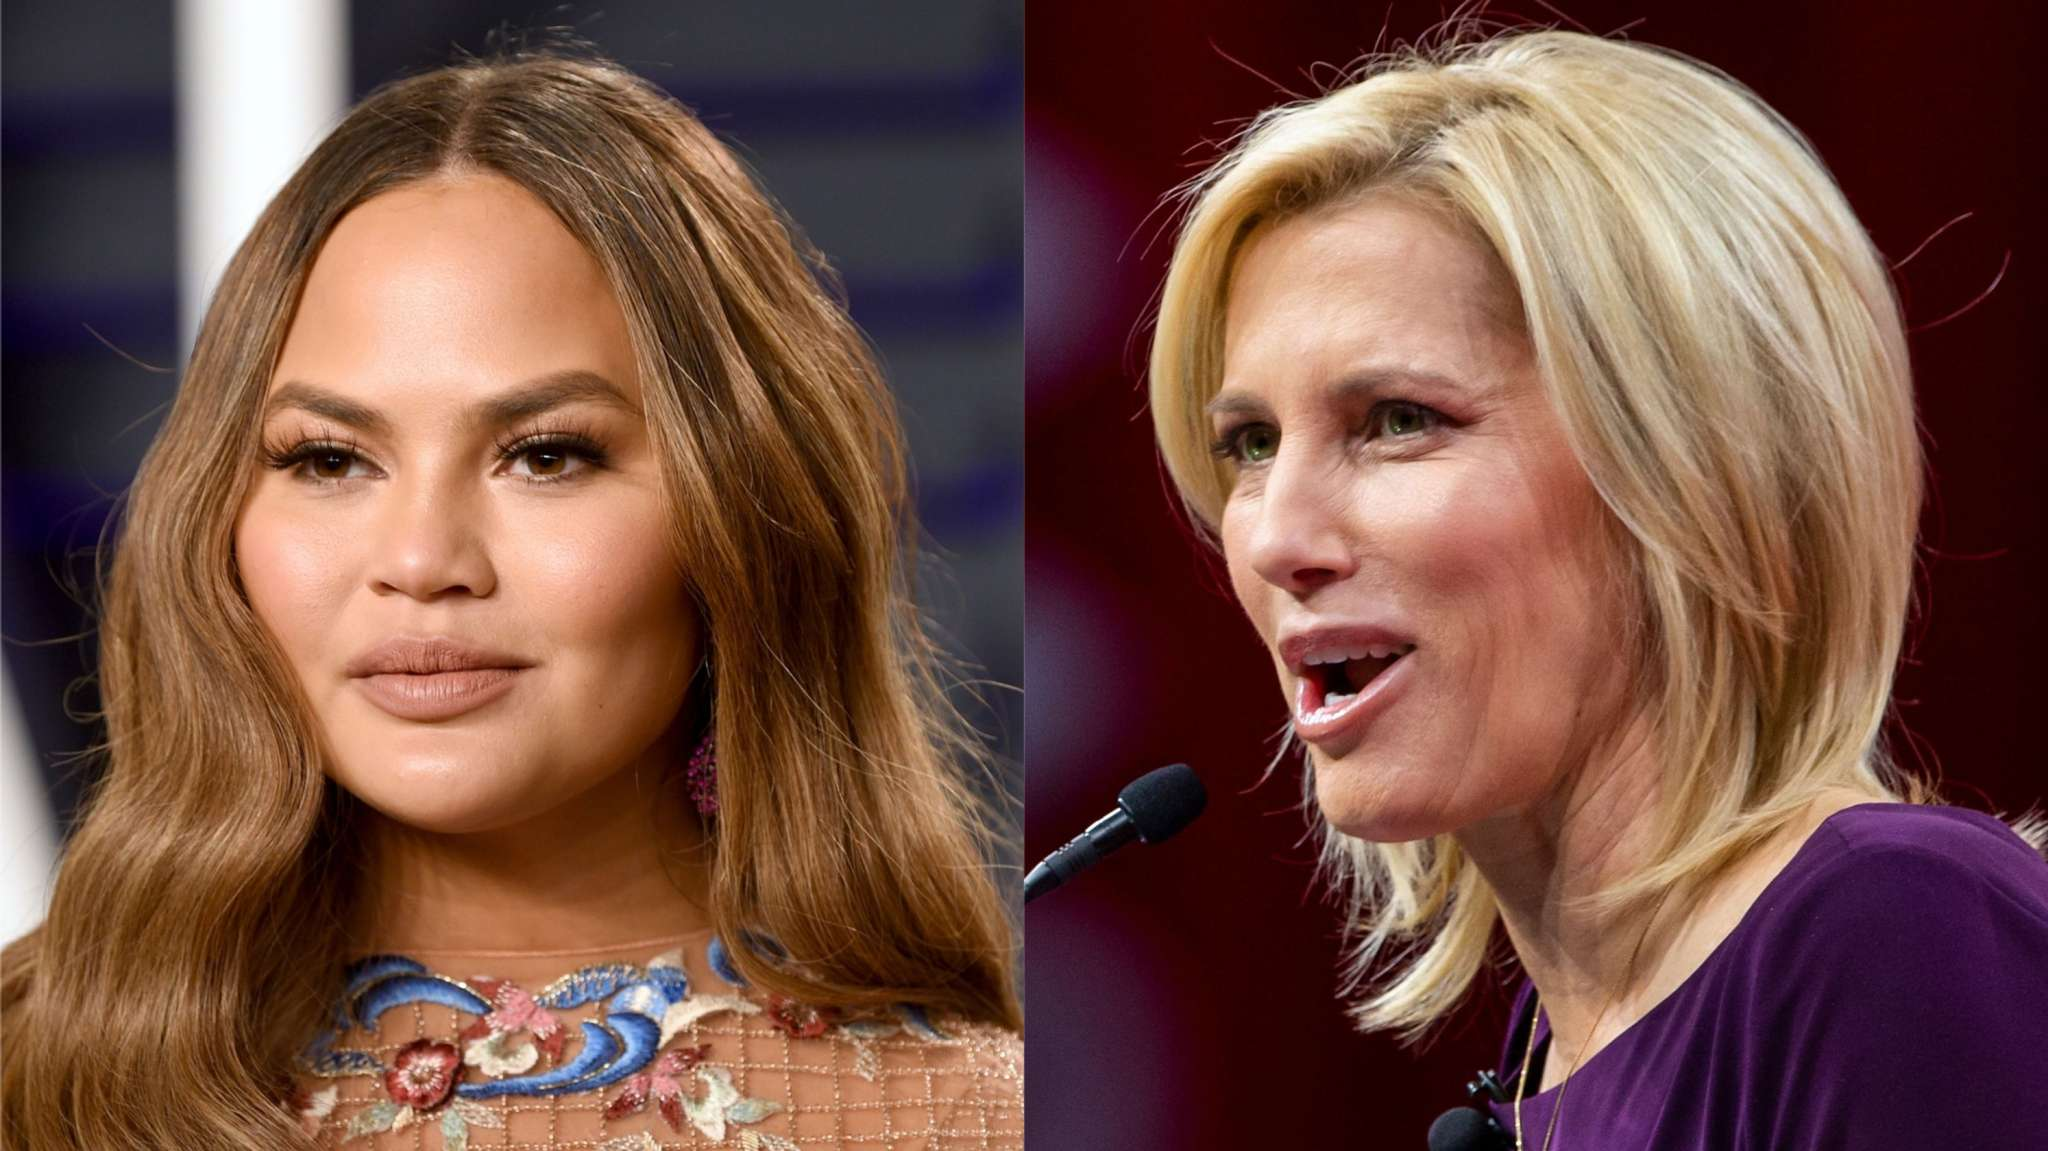 laura-ingraham-came-for-the-wrong-person-find-out-what-happened-between-her-and-chrissy-teigen-and-why-john-legends-wife-called-the-host-white-supremacist